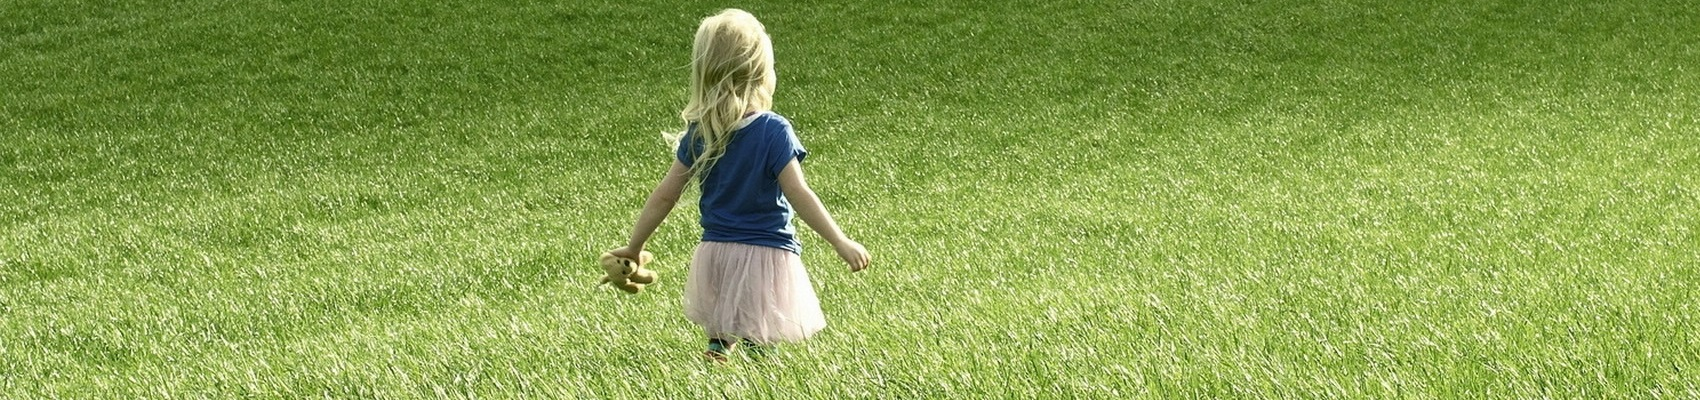 Girl-Child-Field-Grass-Walkv2